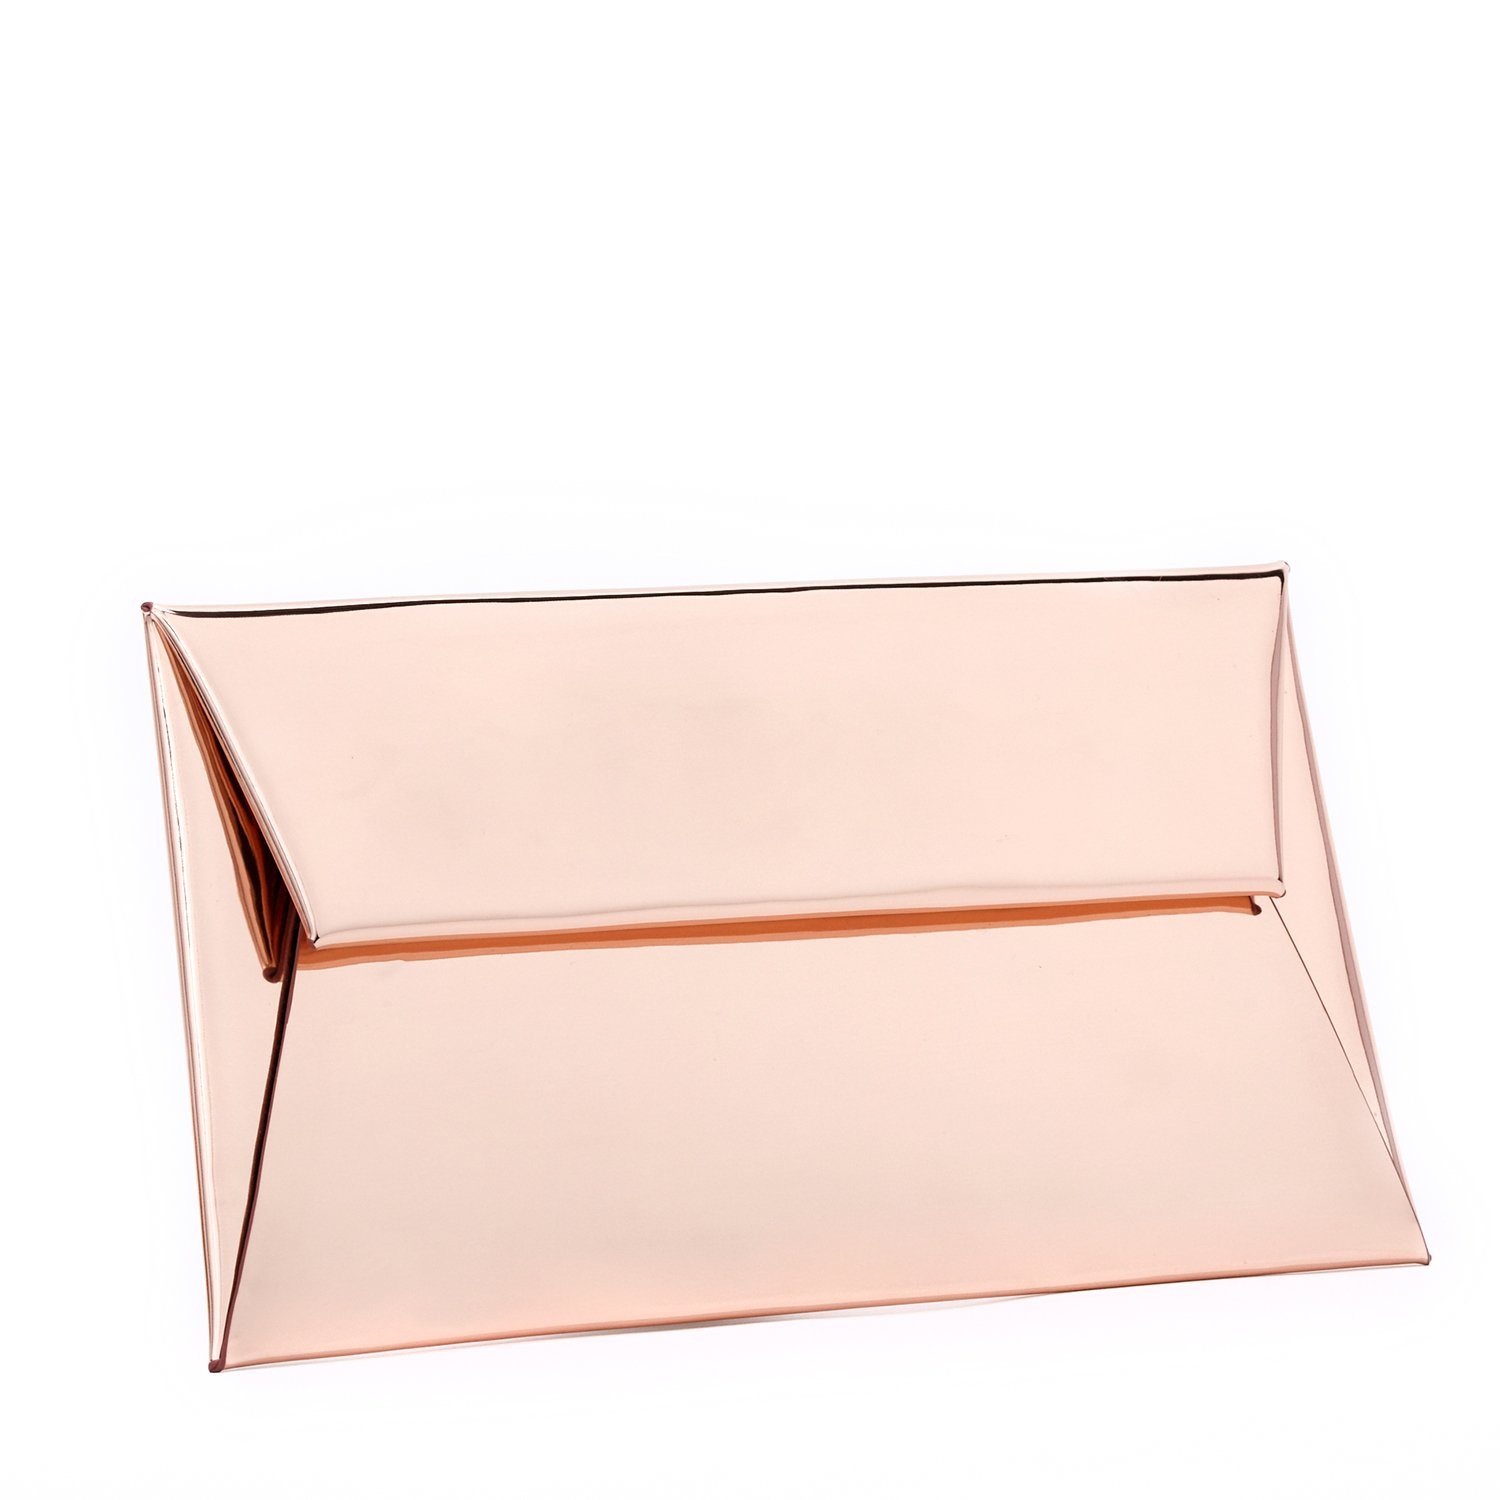 BYSUMMER MARKFRAN Metallic Envelope Clutch (Rose Gold)